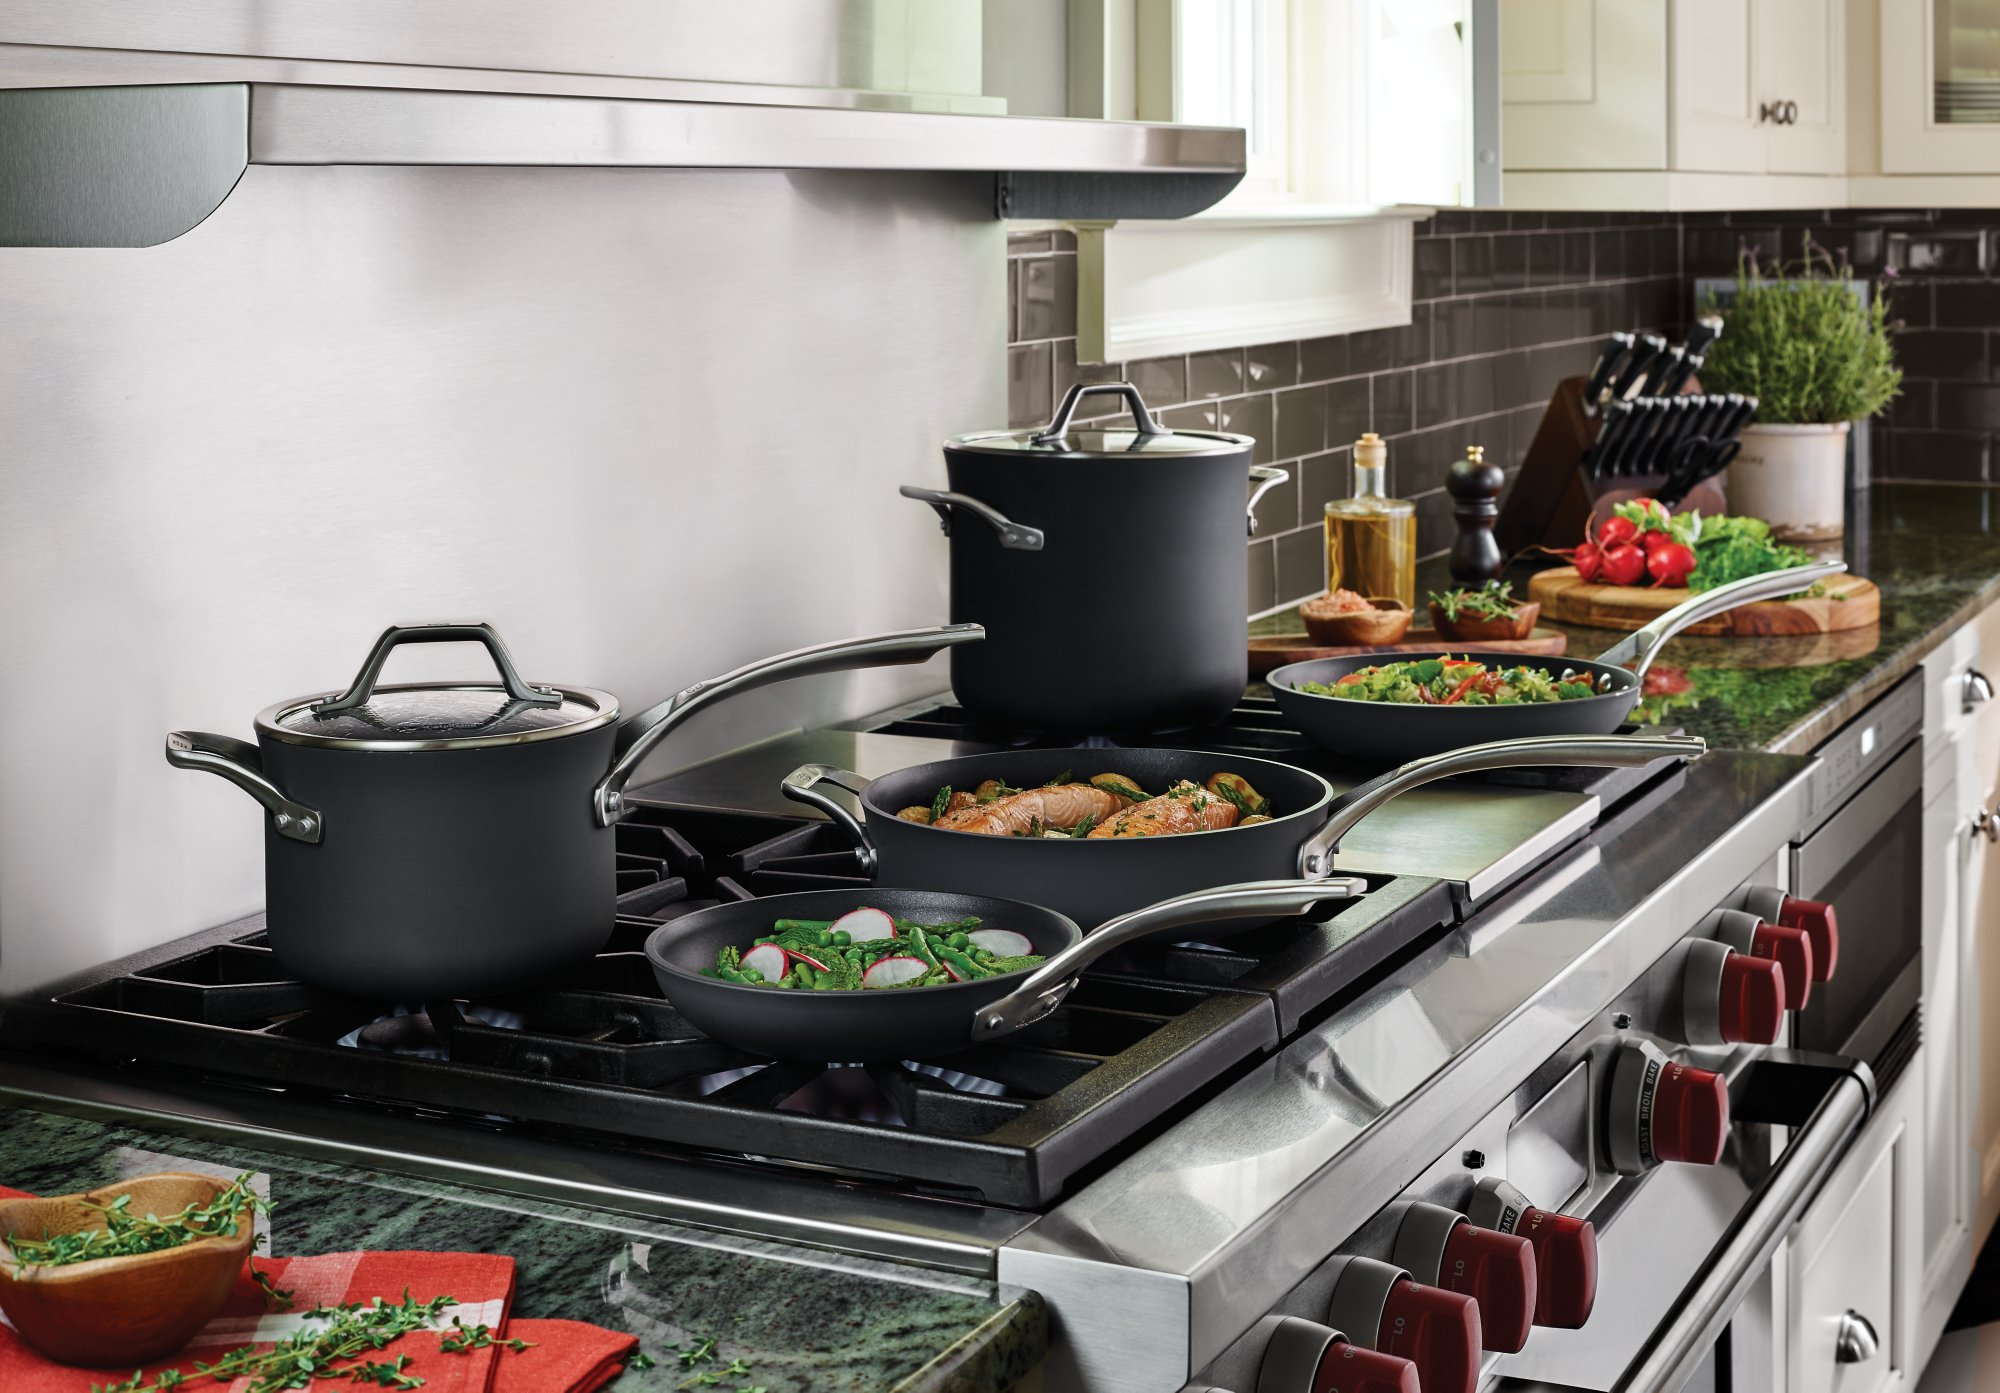 calphalon kitchen outlet aid coupons cookware cutlery bakeware kitchenware and more